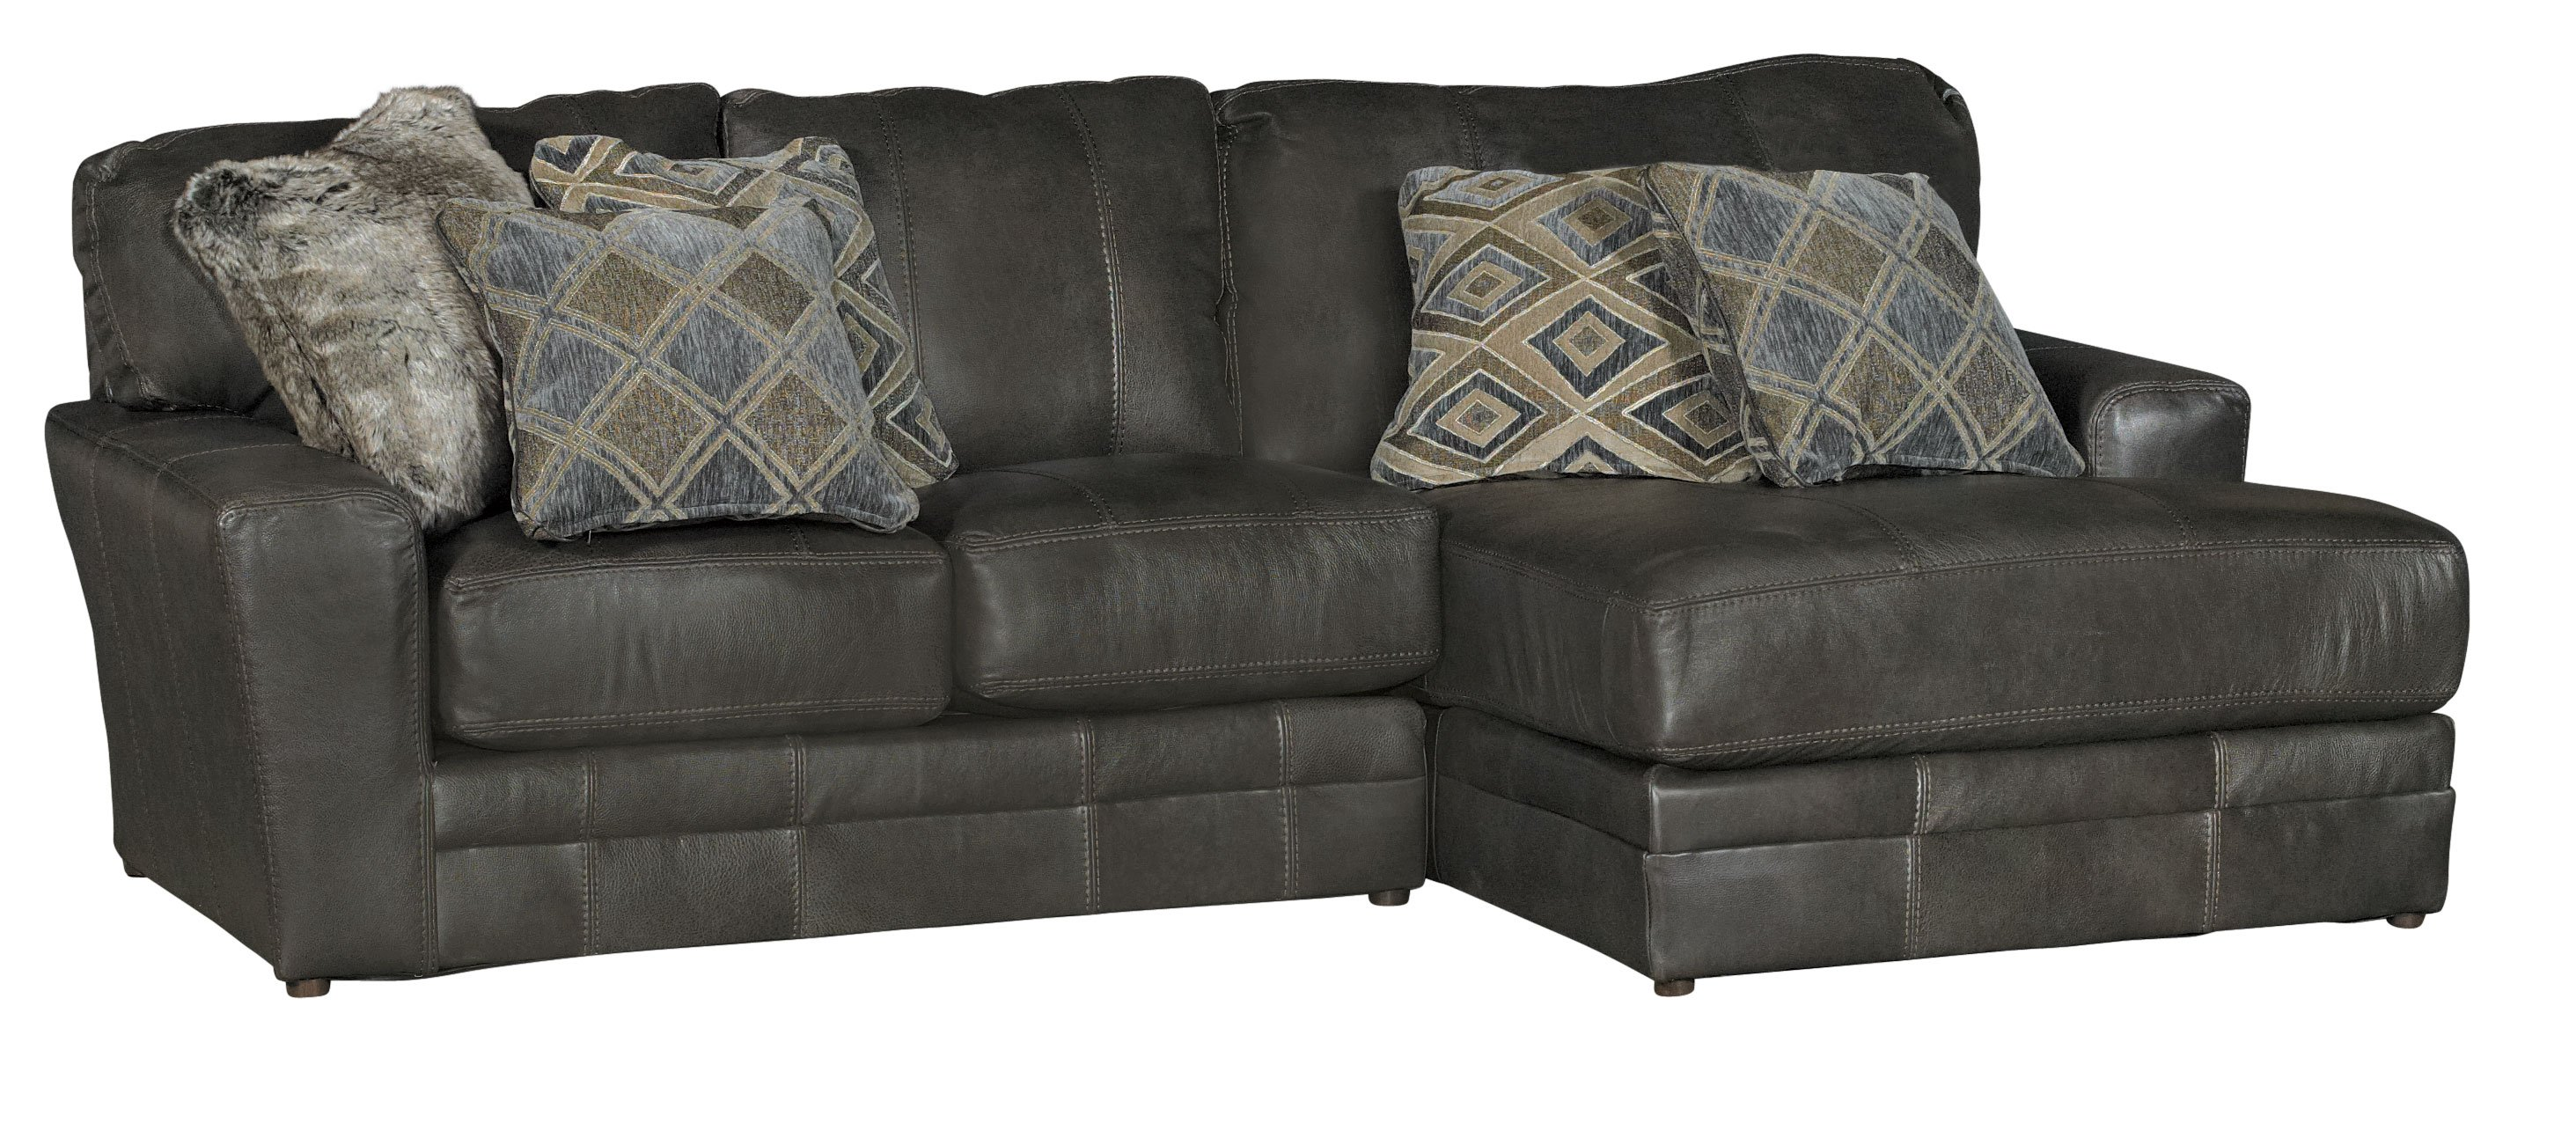 Casual Classic Steel Gray Leather Match 2 Piece Sectional   Denali